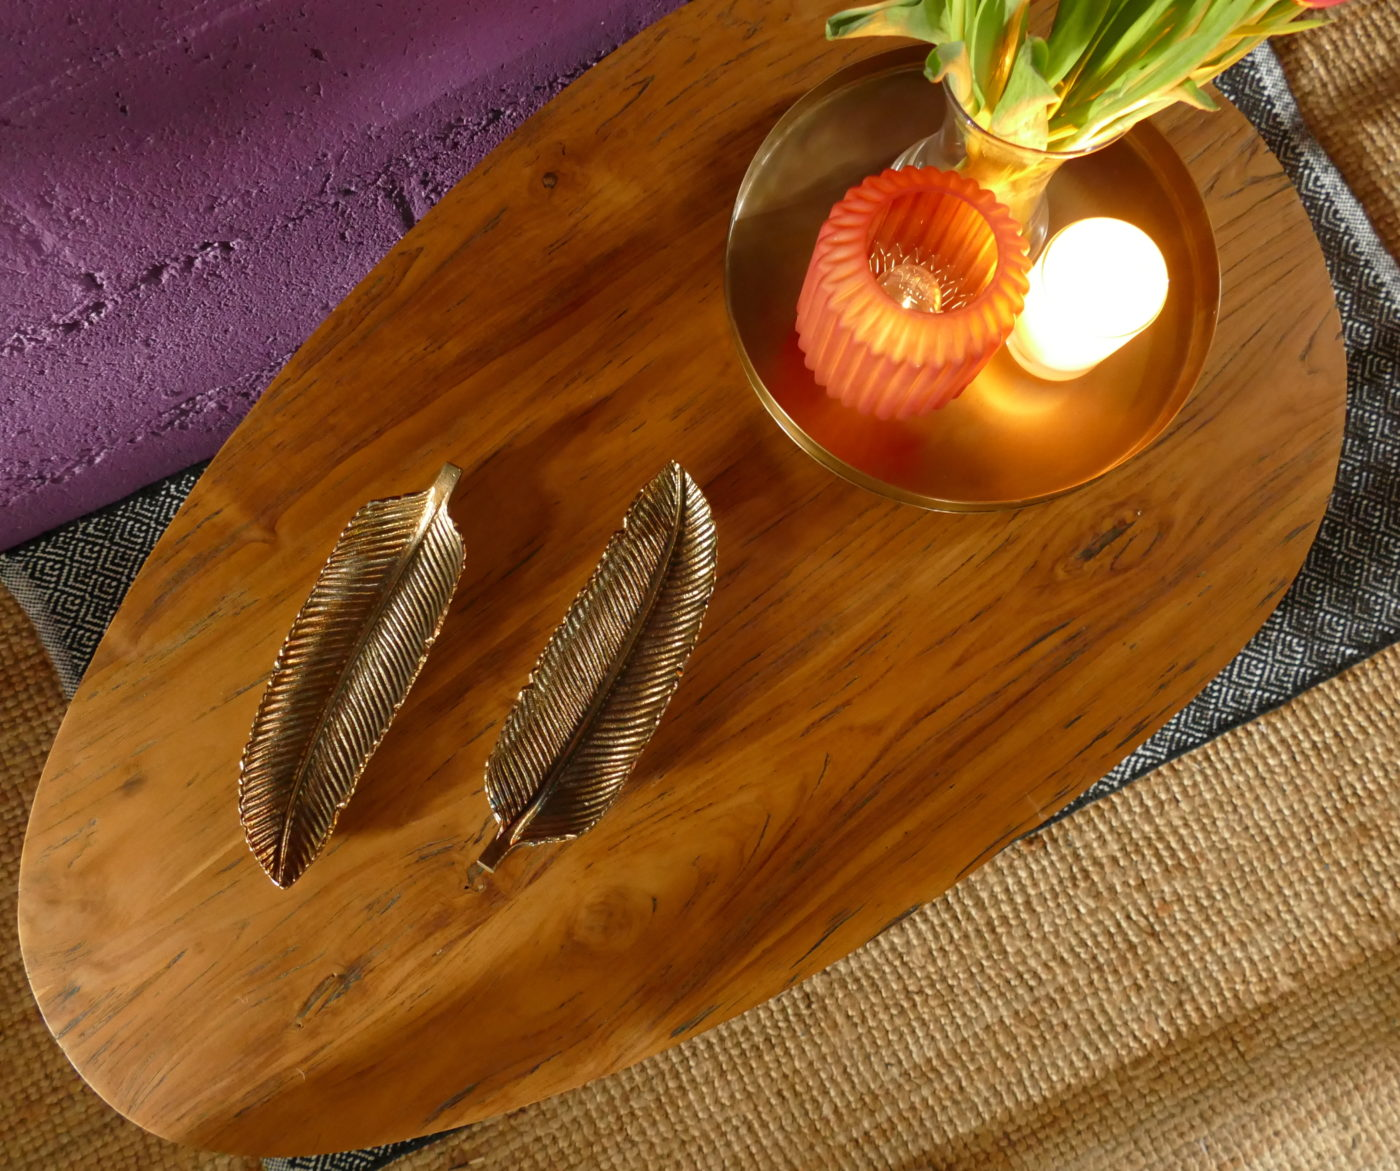 egg shaped table with candles and leaf bowls